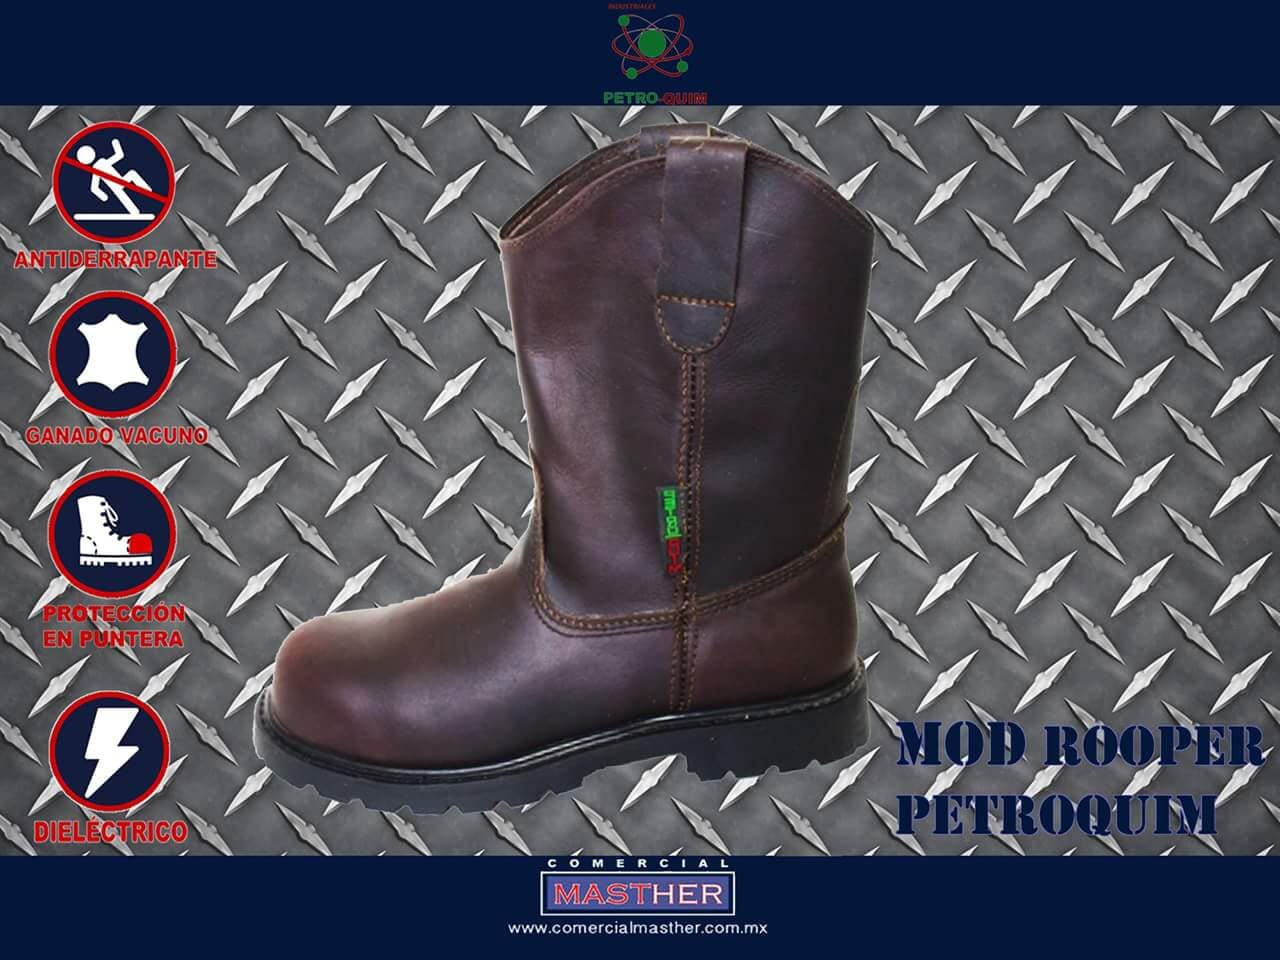 COMERCIAL MASTHER Zapatos industriales